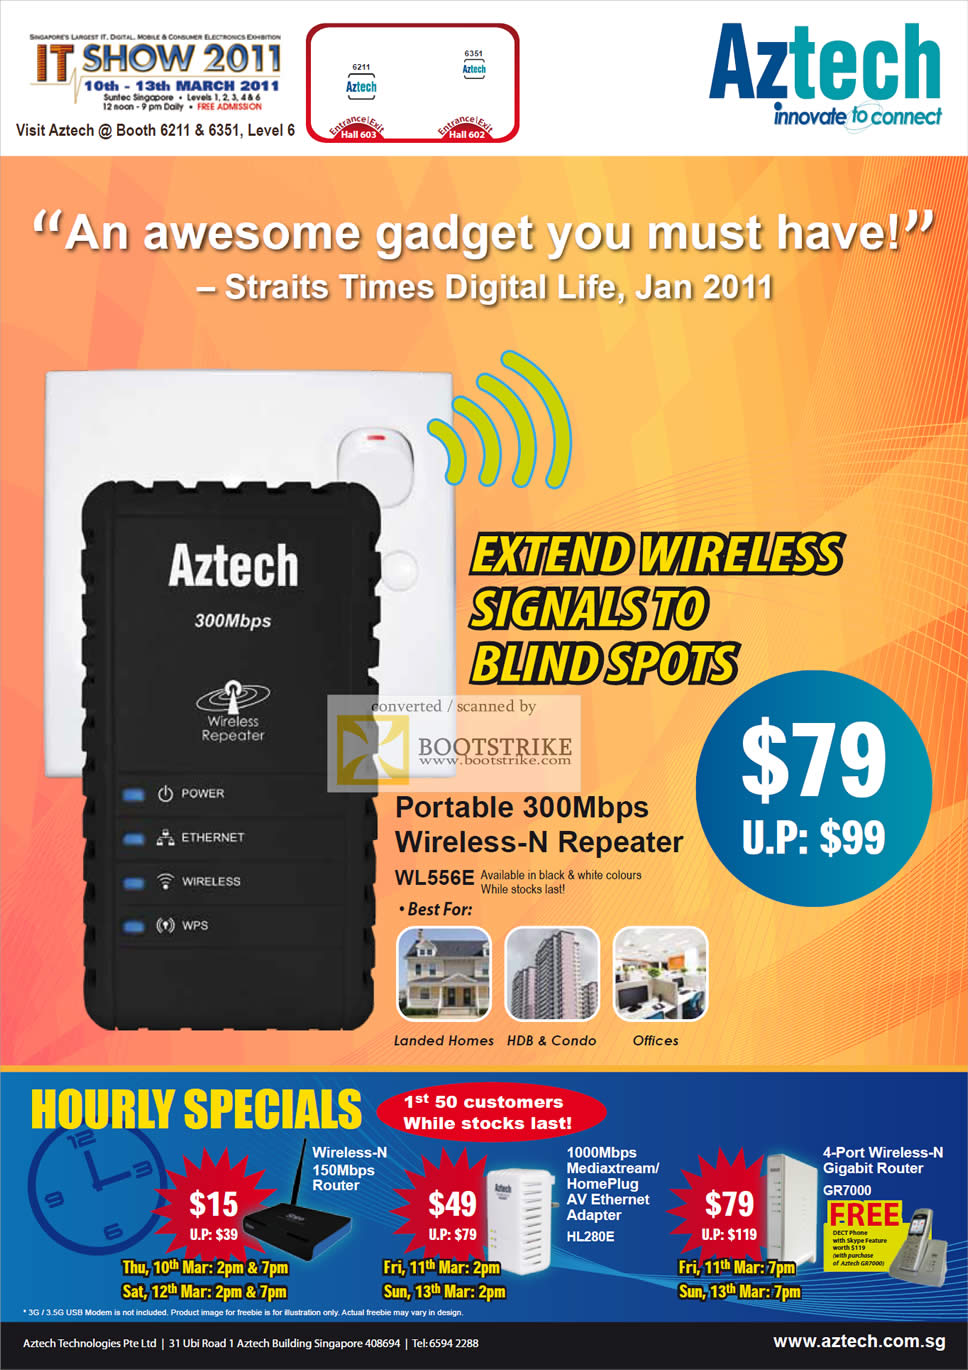 IT Show 2011 price list image brochure of Aztech Wireless N Repeater WL556E Hourly Specials HL280E GR7000